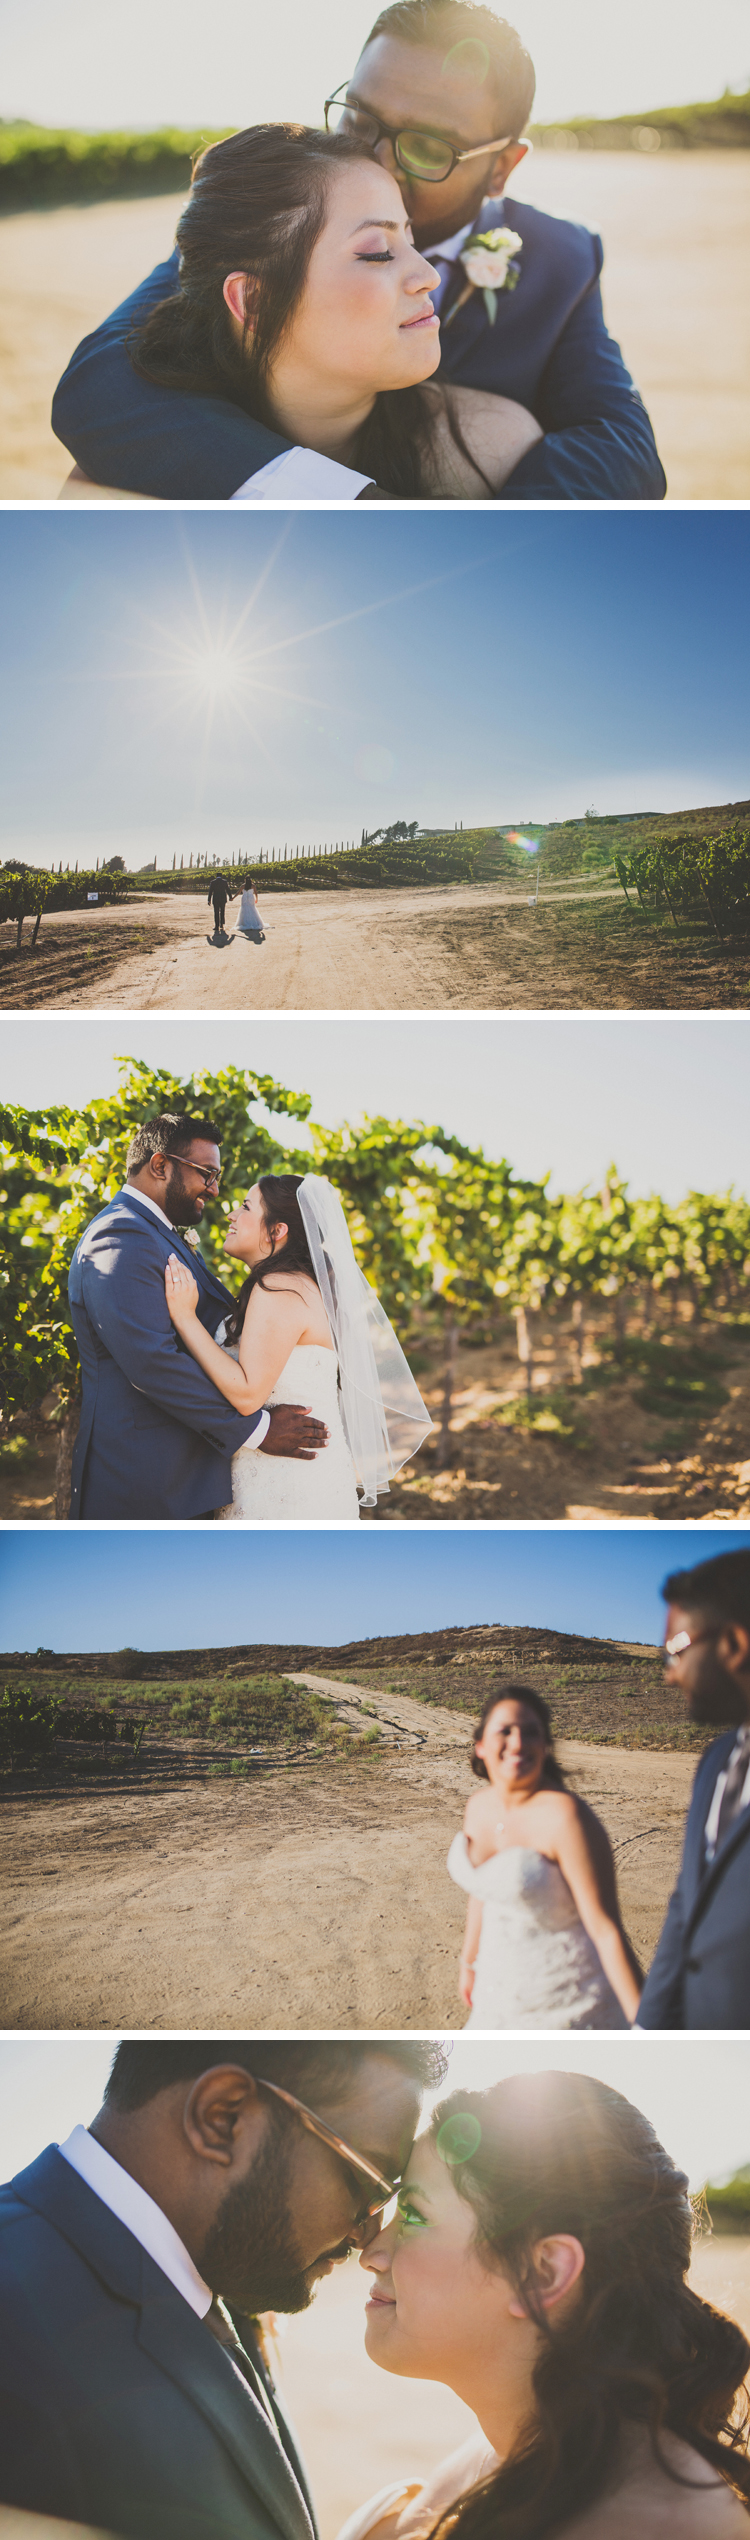 Wedding Photos At Europa Village Temecula